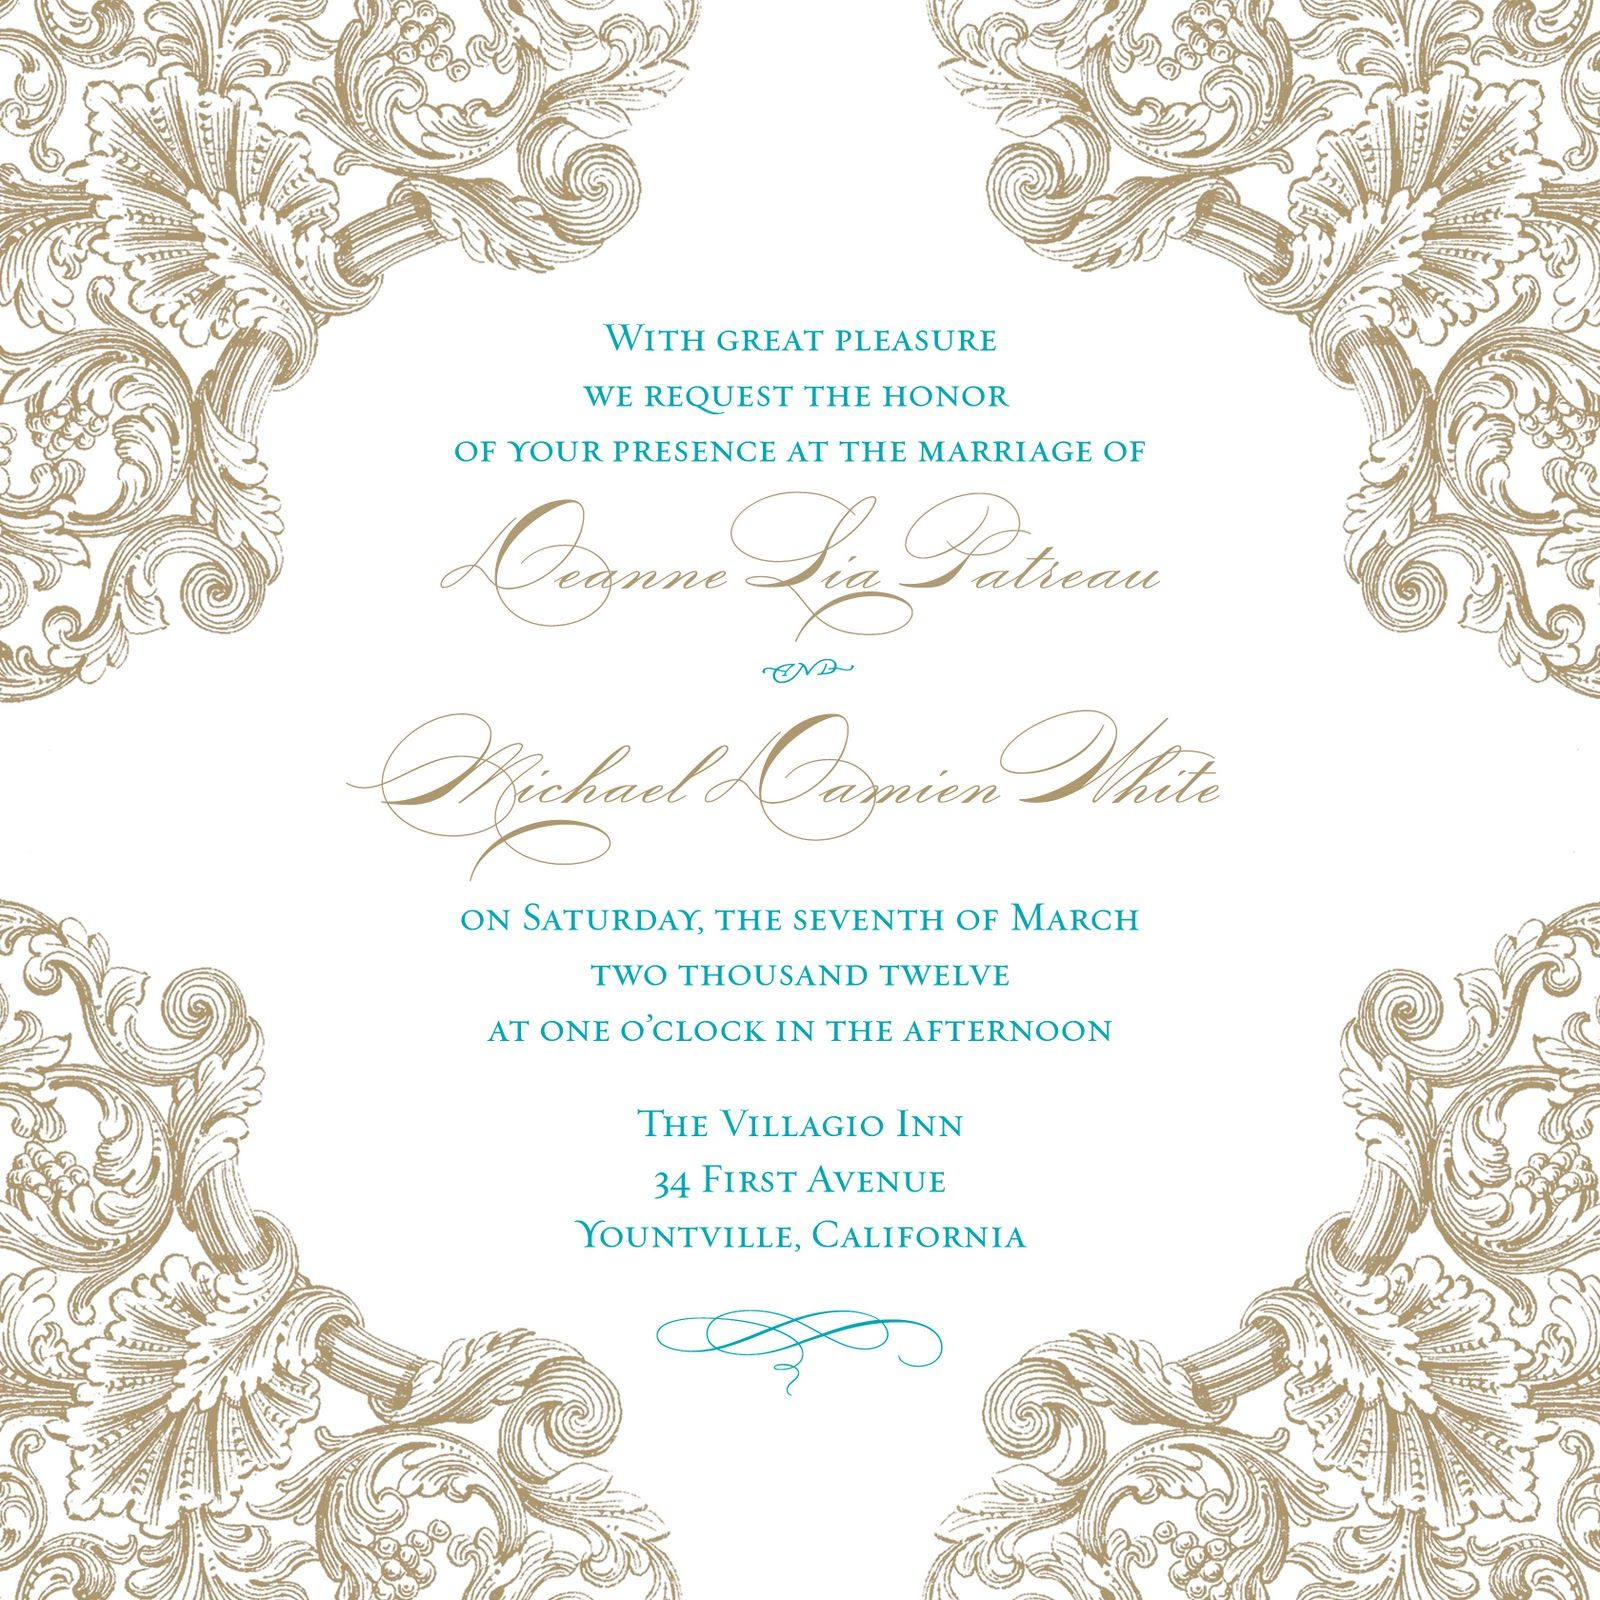 Collection of thousands of free web invitation template from all amusing design ideas for printable wedding invitation card custom stopboris Images